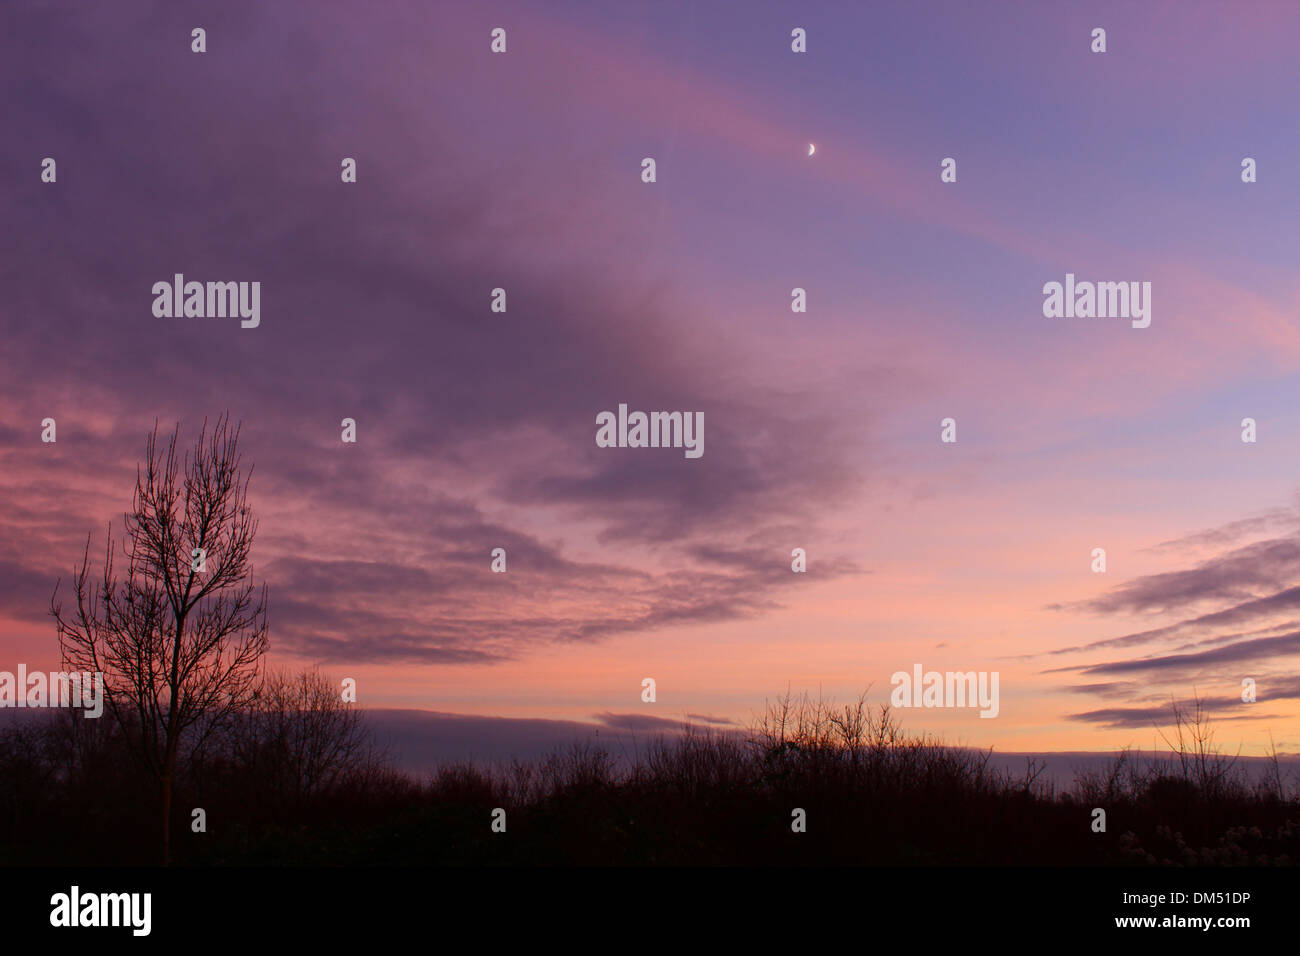 Epic sunset with different colours and some clouds in the sky. - Stock Image